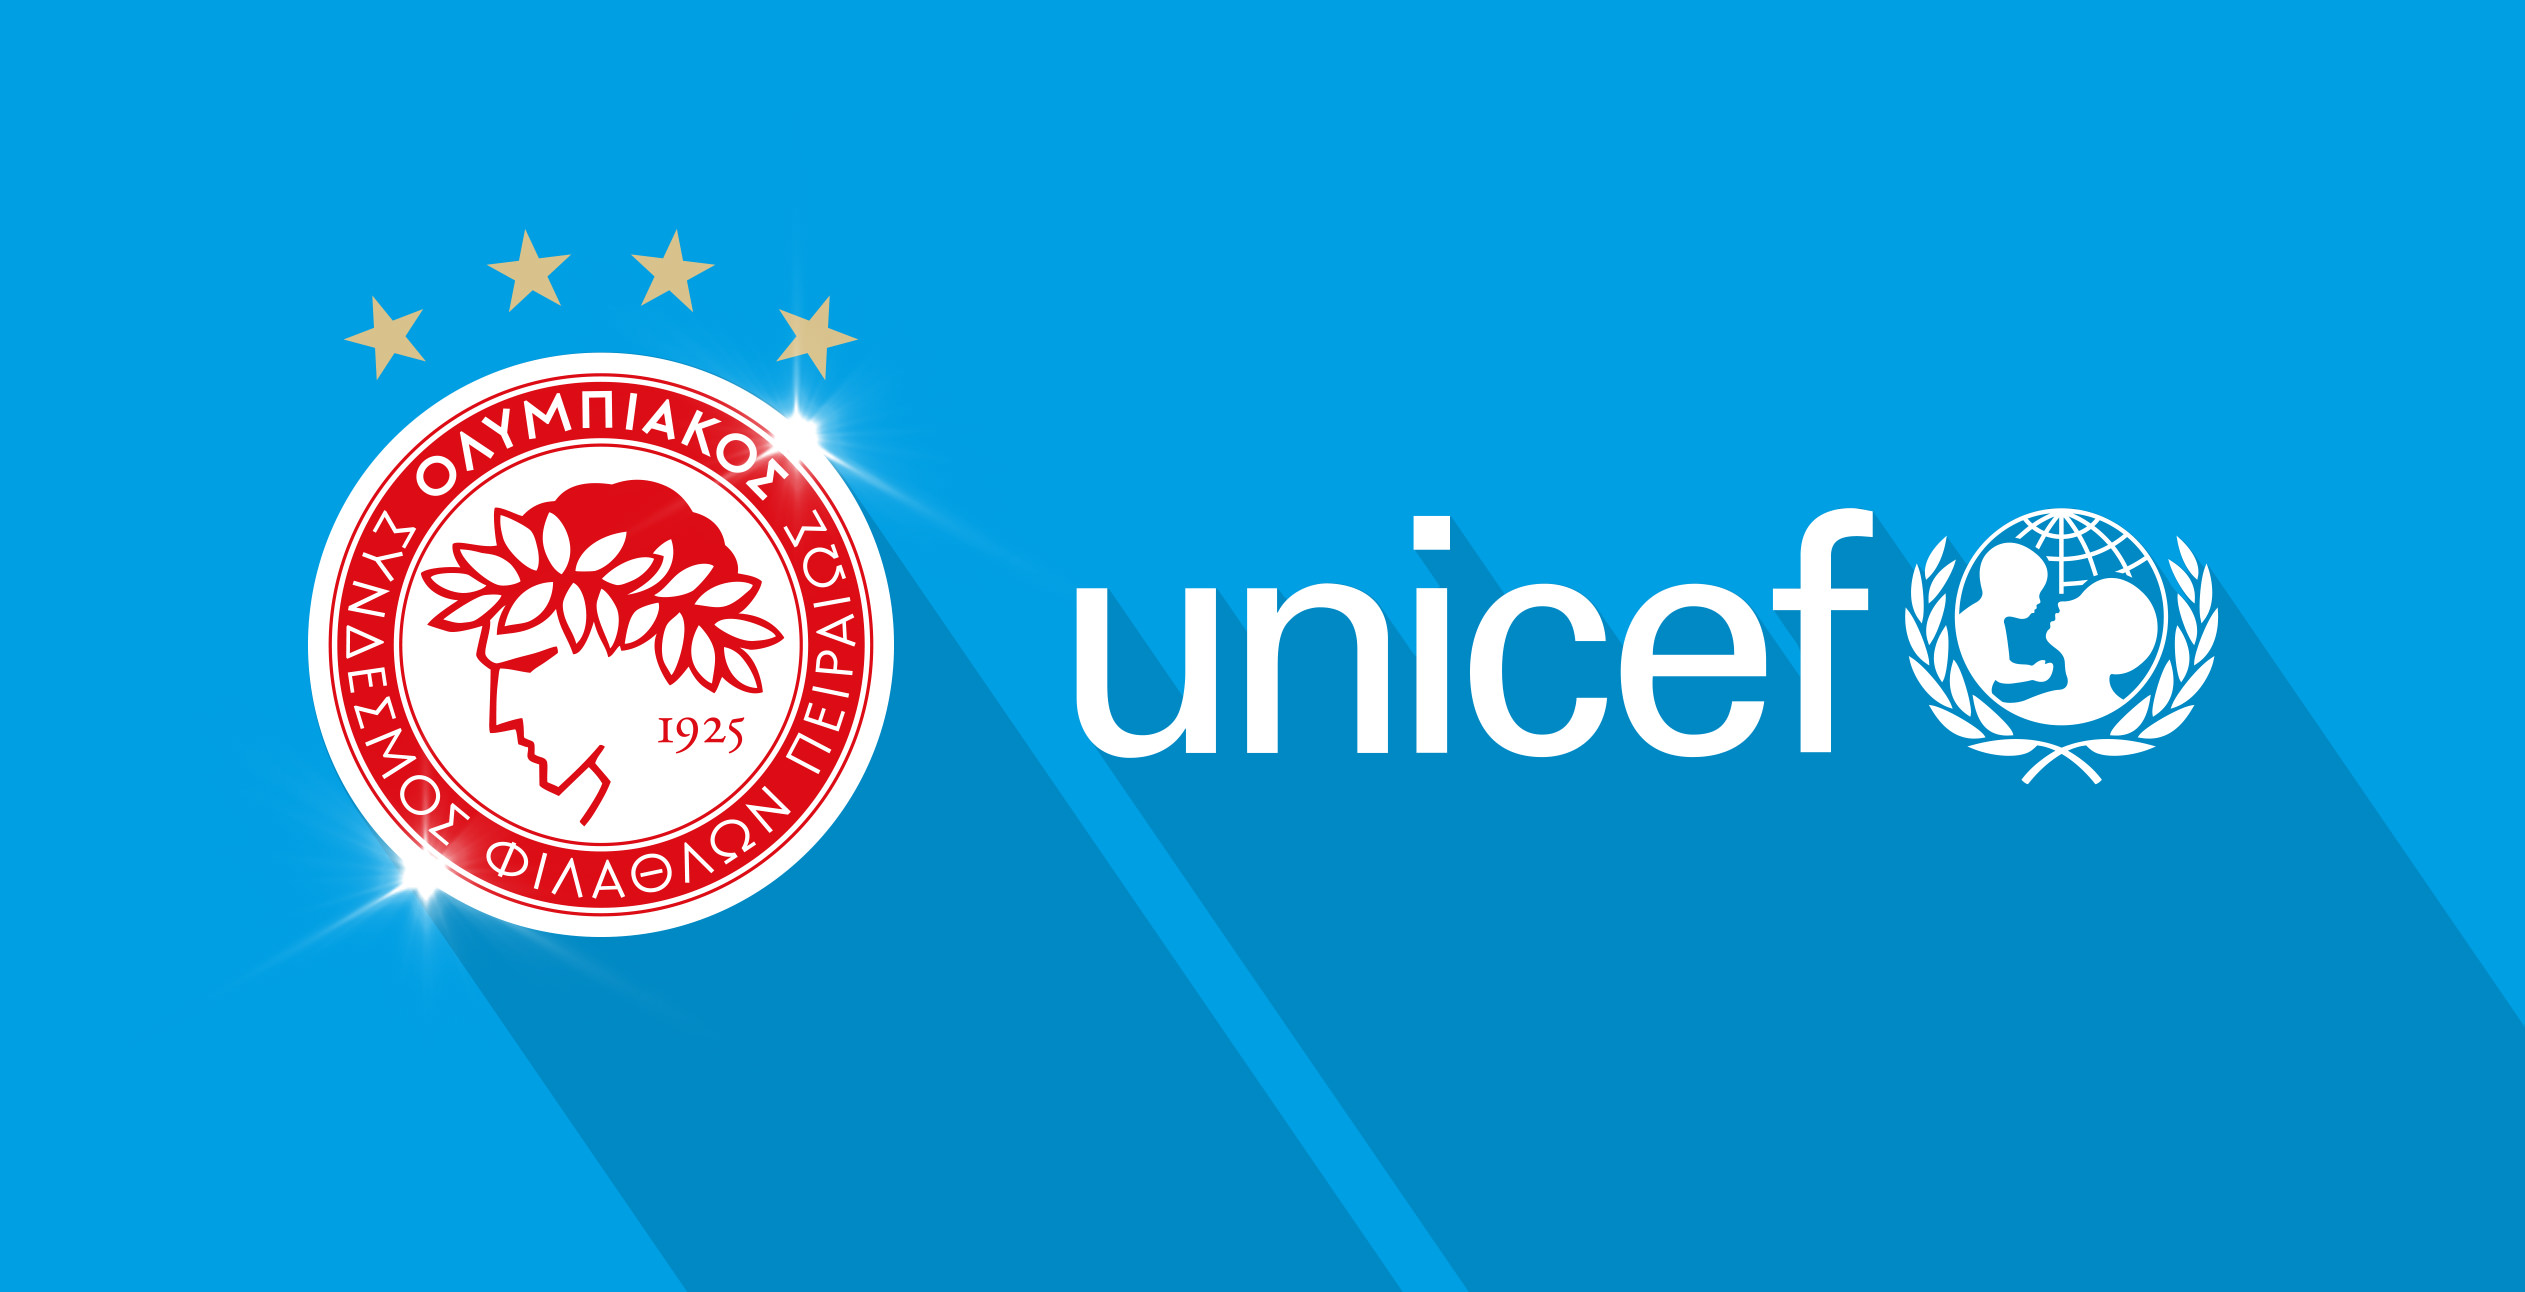 Olympiacos FC and UNICEF renew their partnership